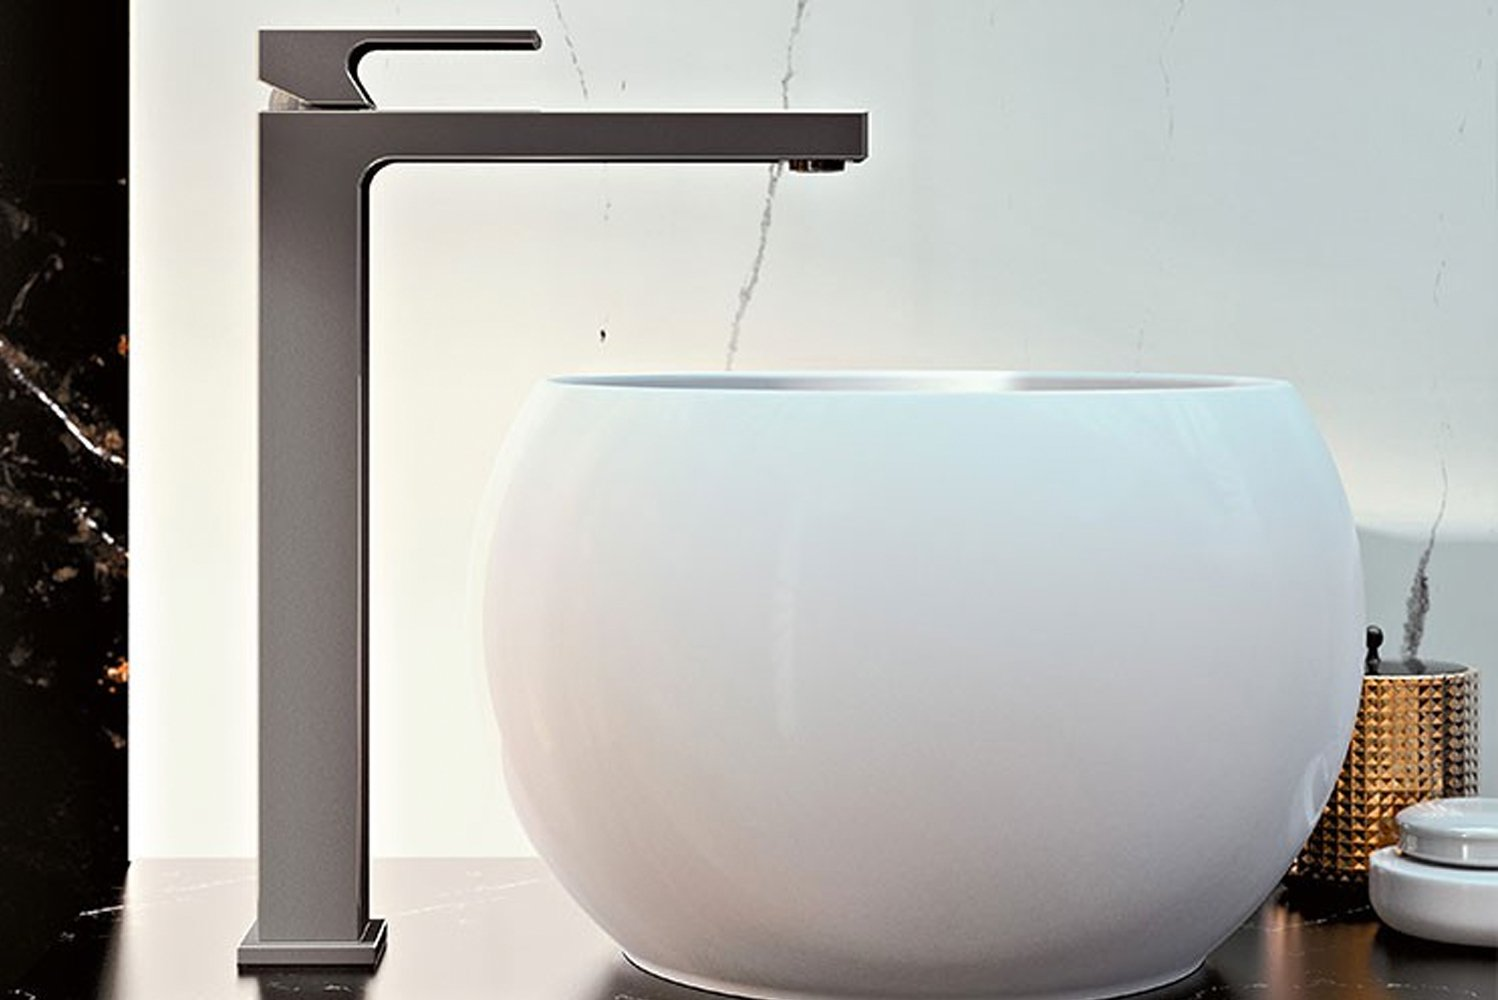 Projecting a modern aesthetic, furthered by the faucet's 90-degree angle, the faucet's base and spout are connected without a break in material.